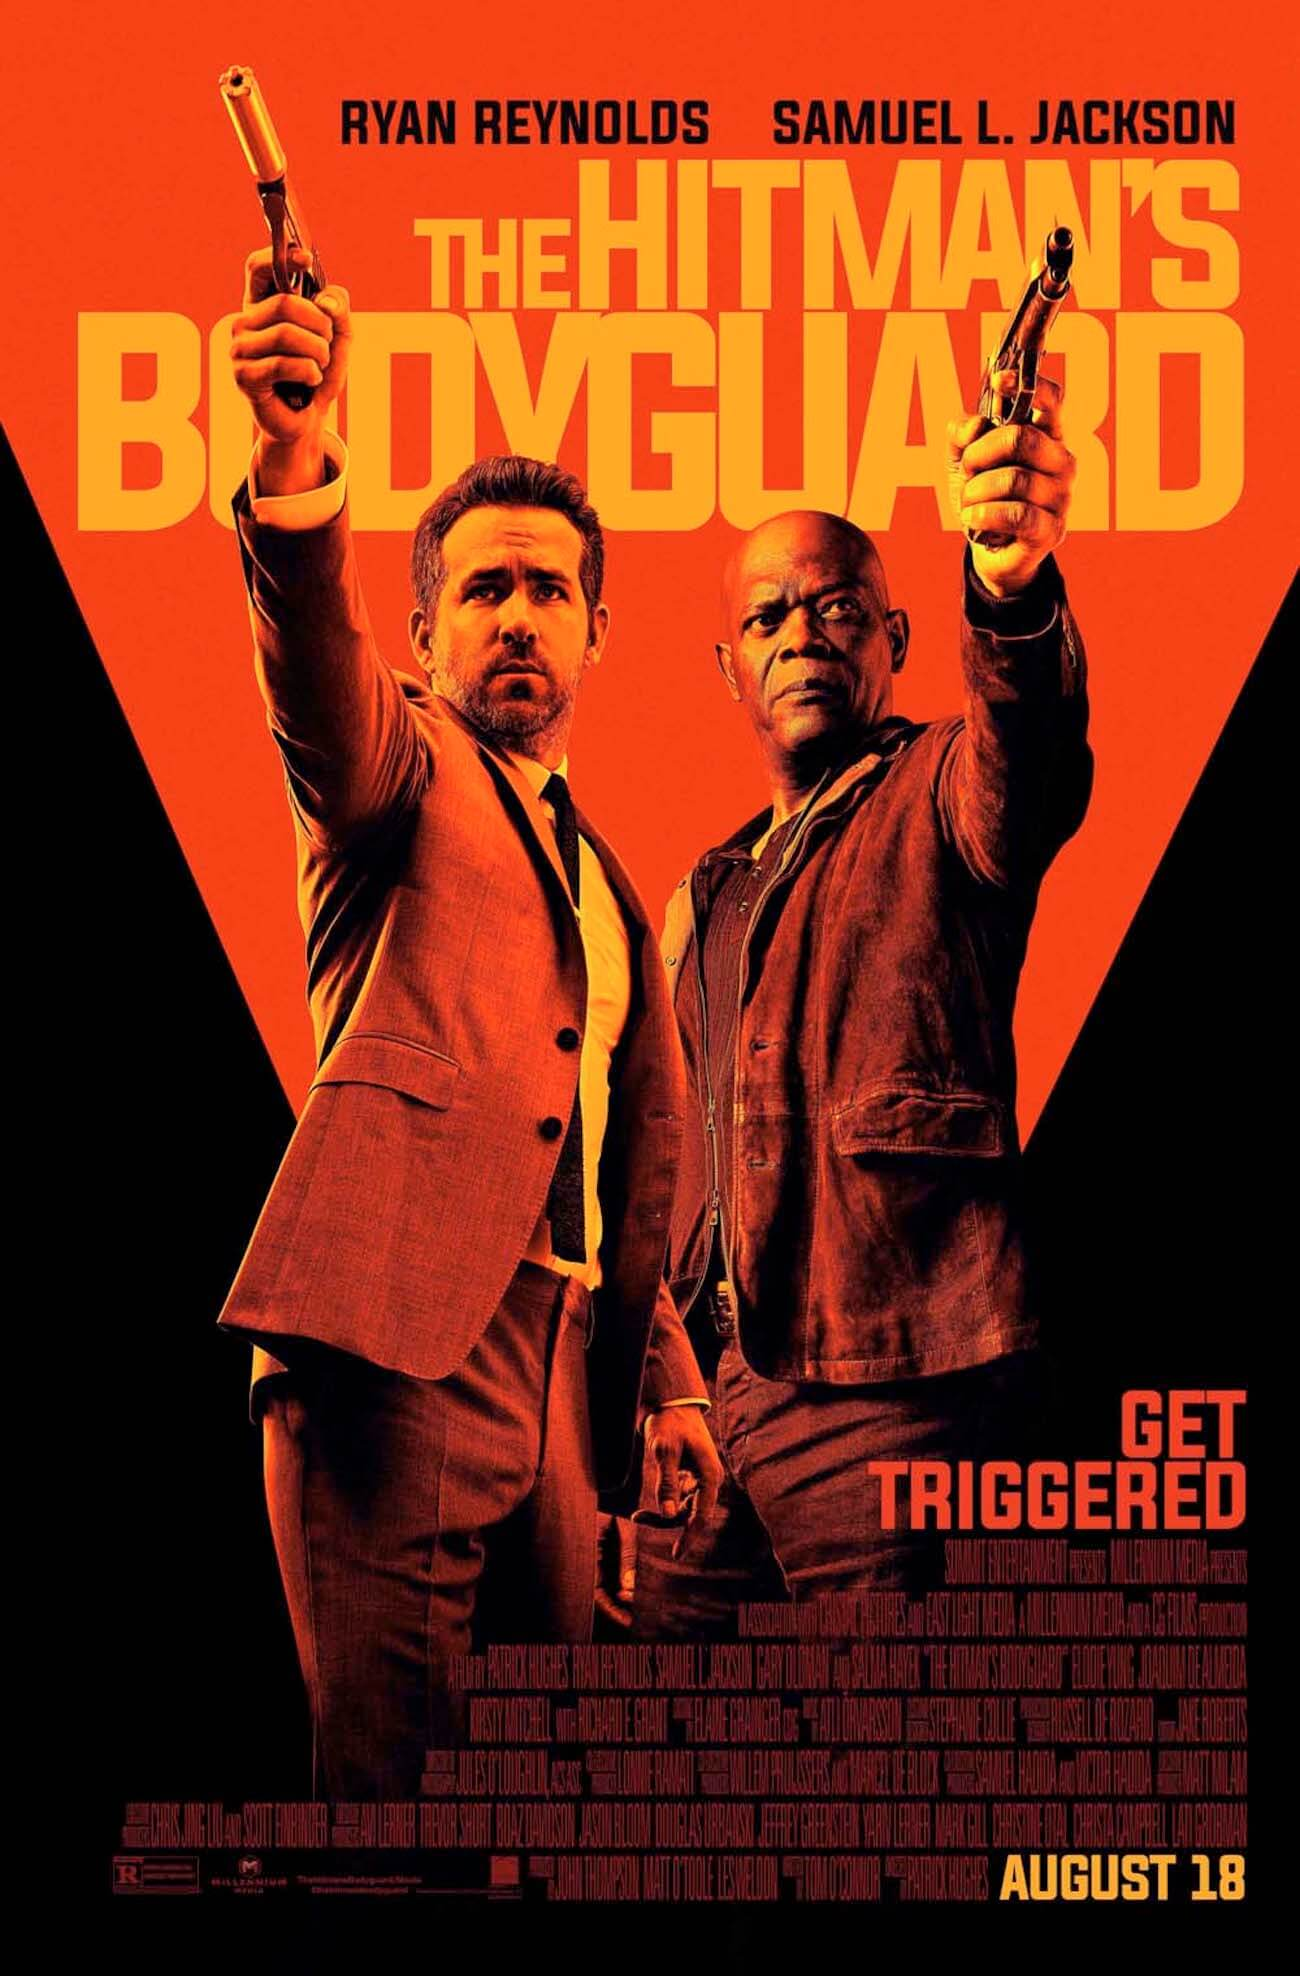 The hitmans bodyguard poster